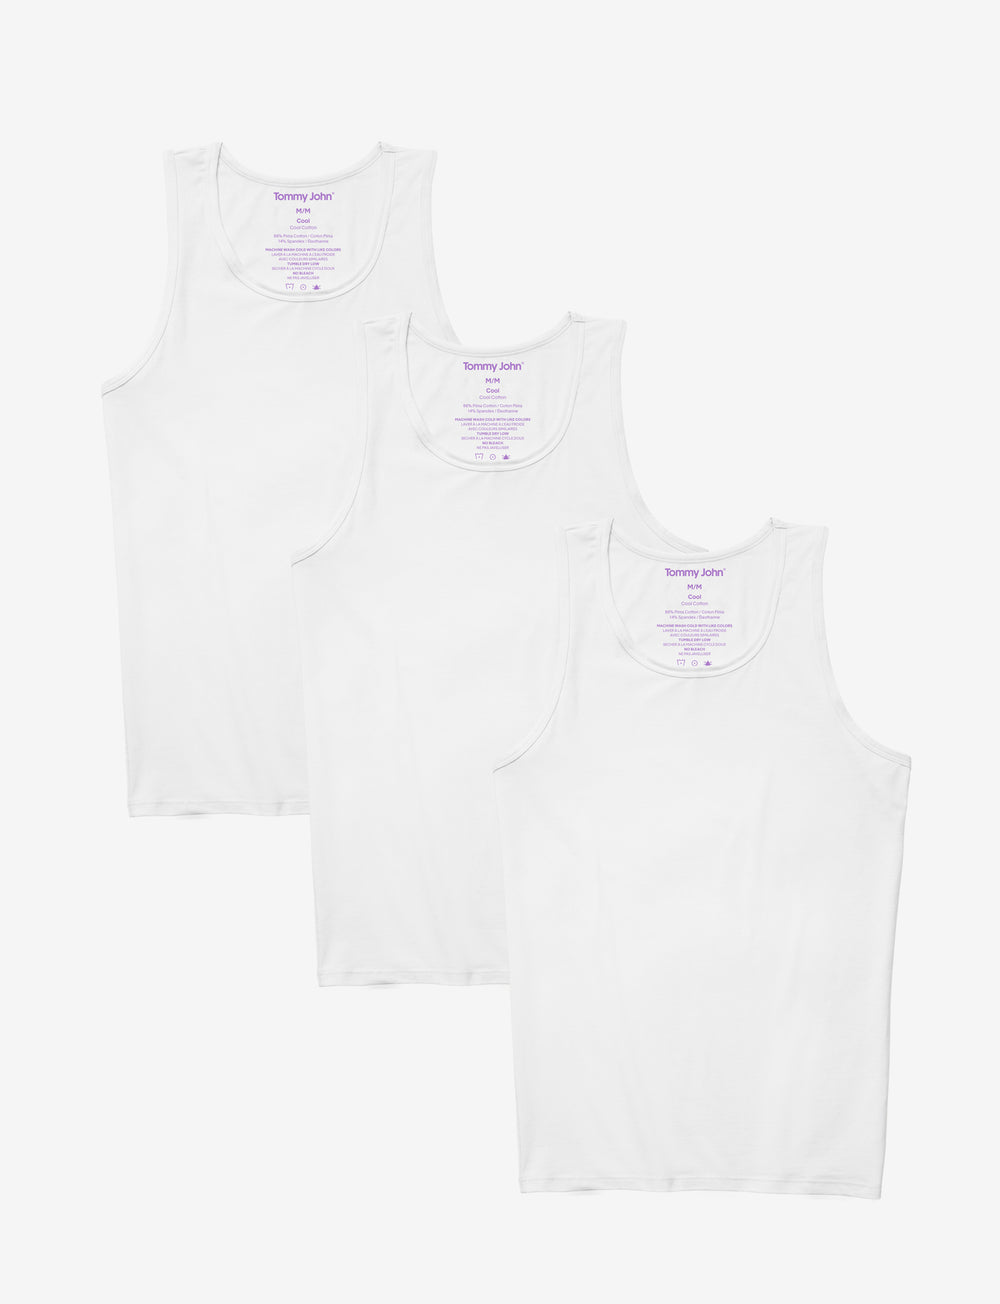 Cool Cotton Tank 3 Pack Details Image